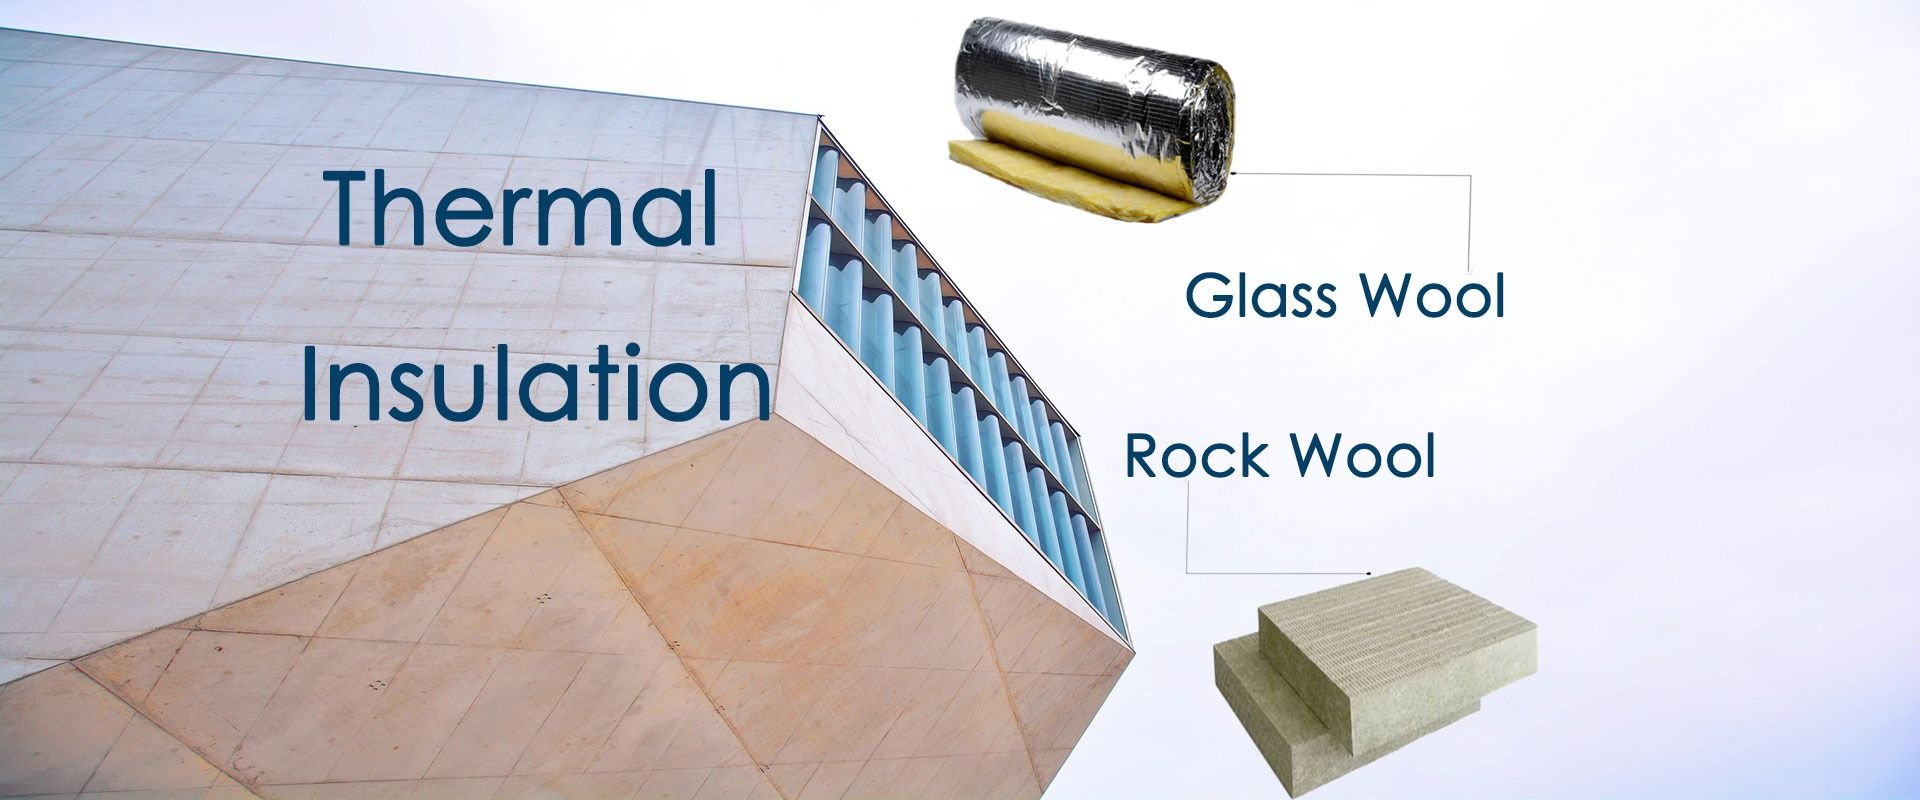 Flat Concrete Roof Insulation Concrete Roof Roof Insulation Roof